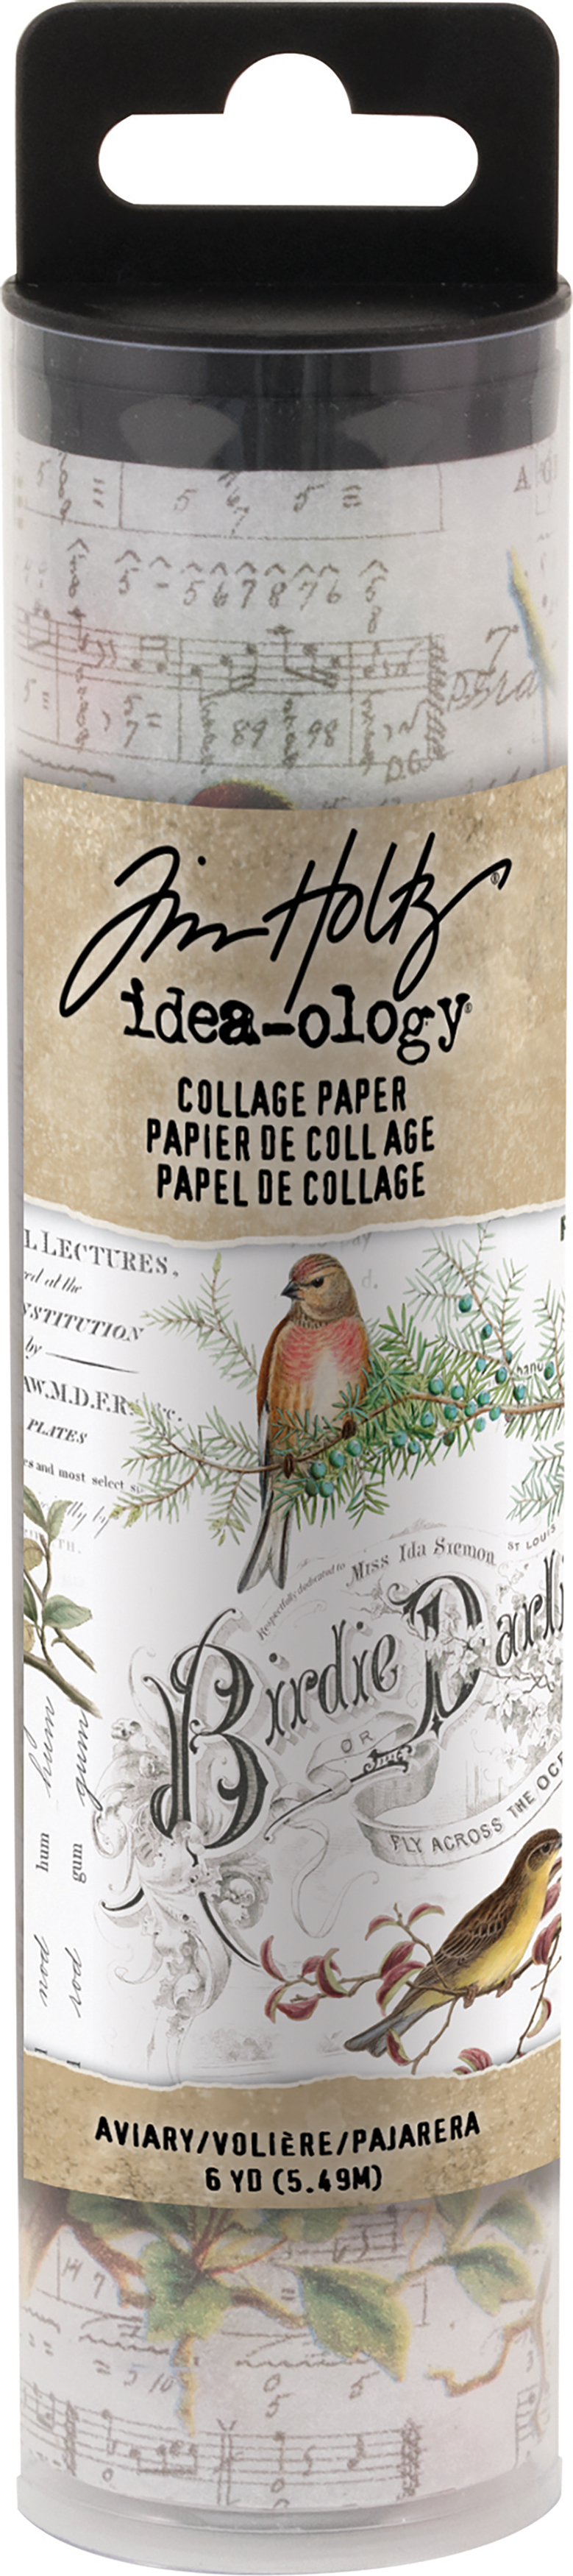 Idea-Ology Collage Paper 6X6yds-Aviary